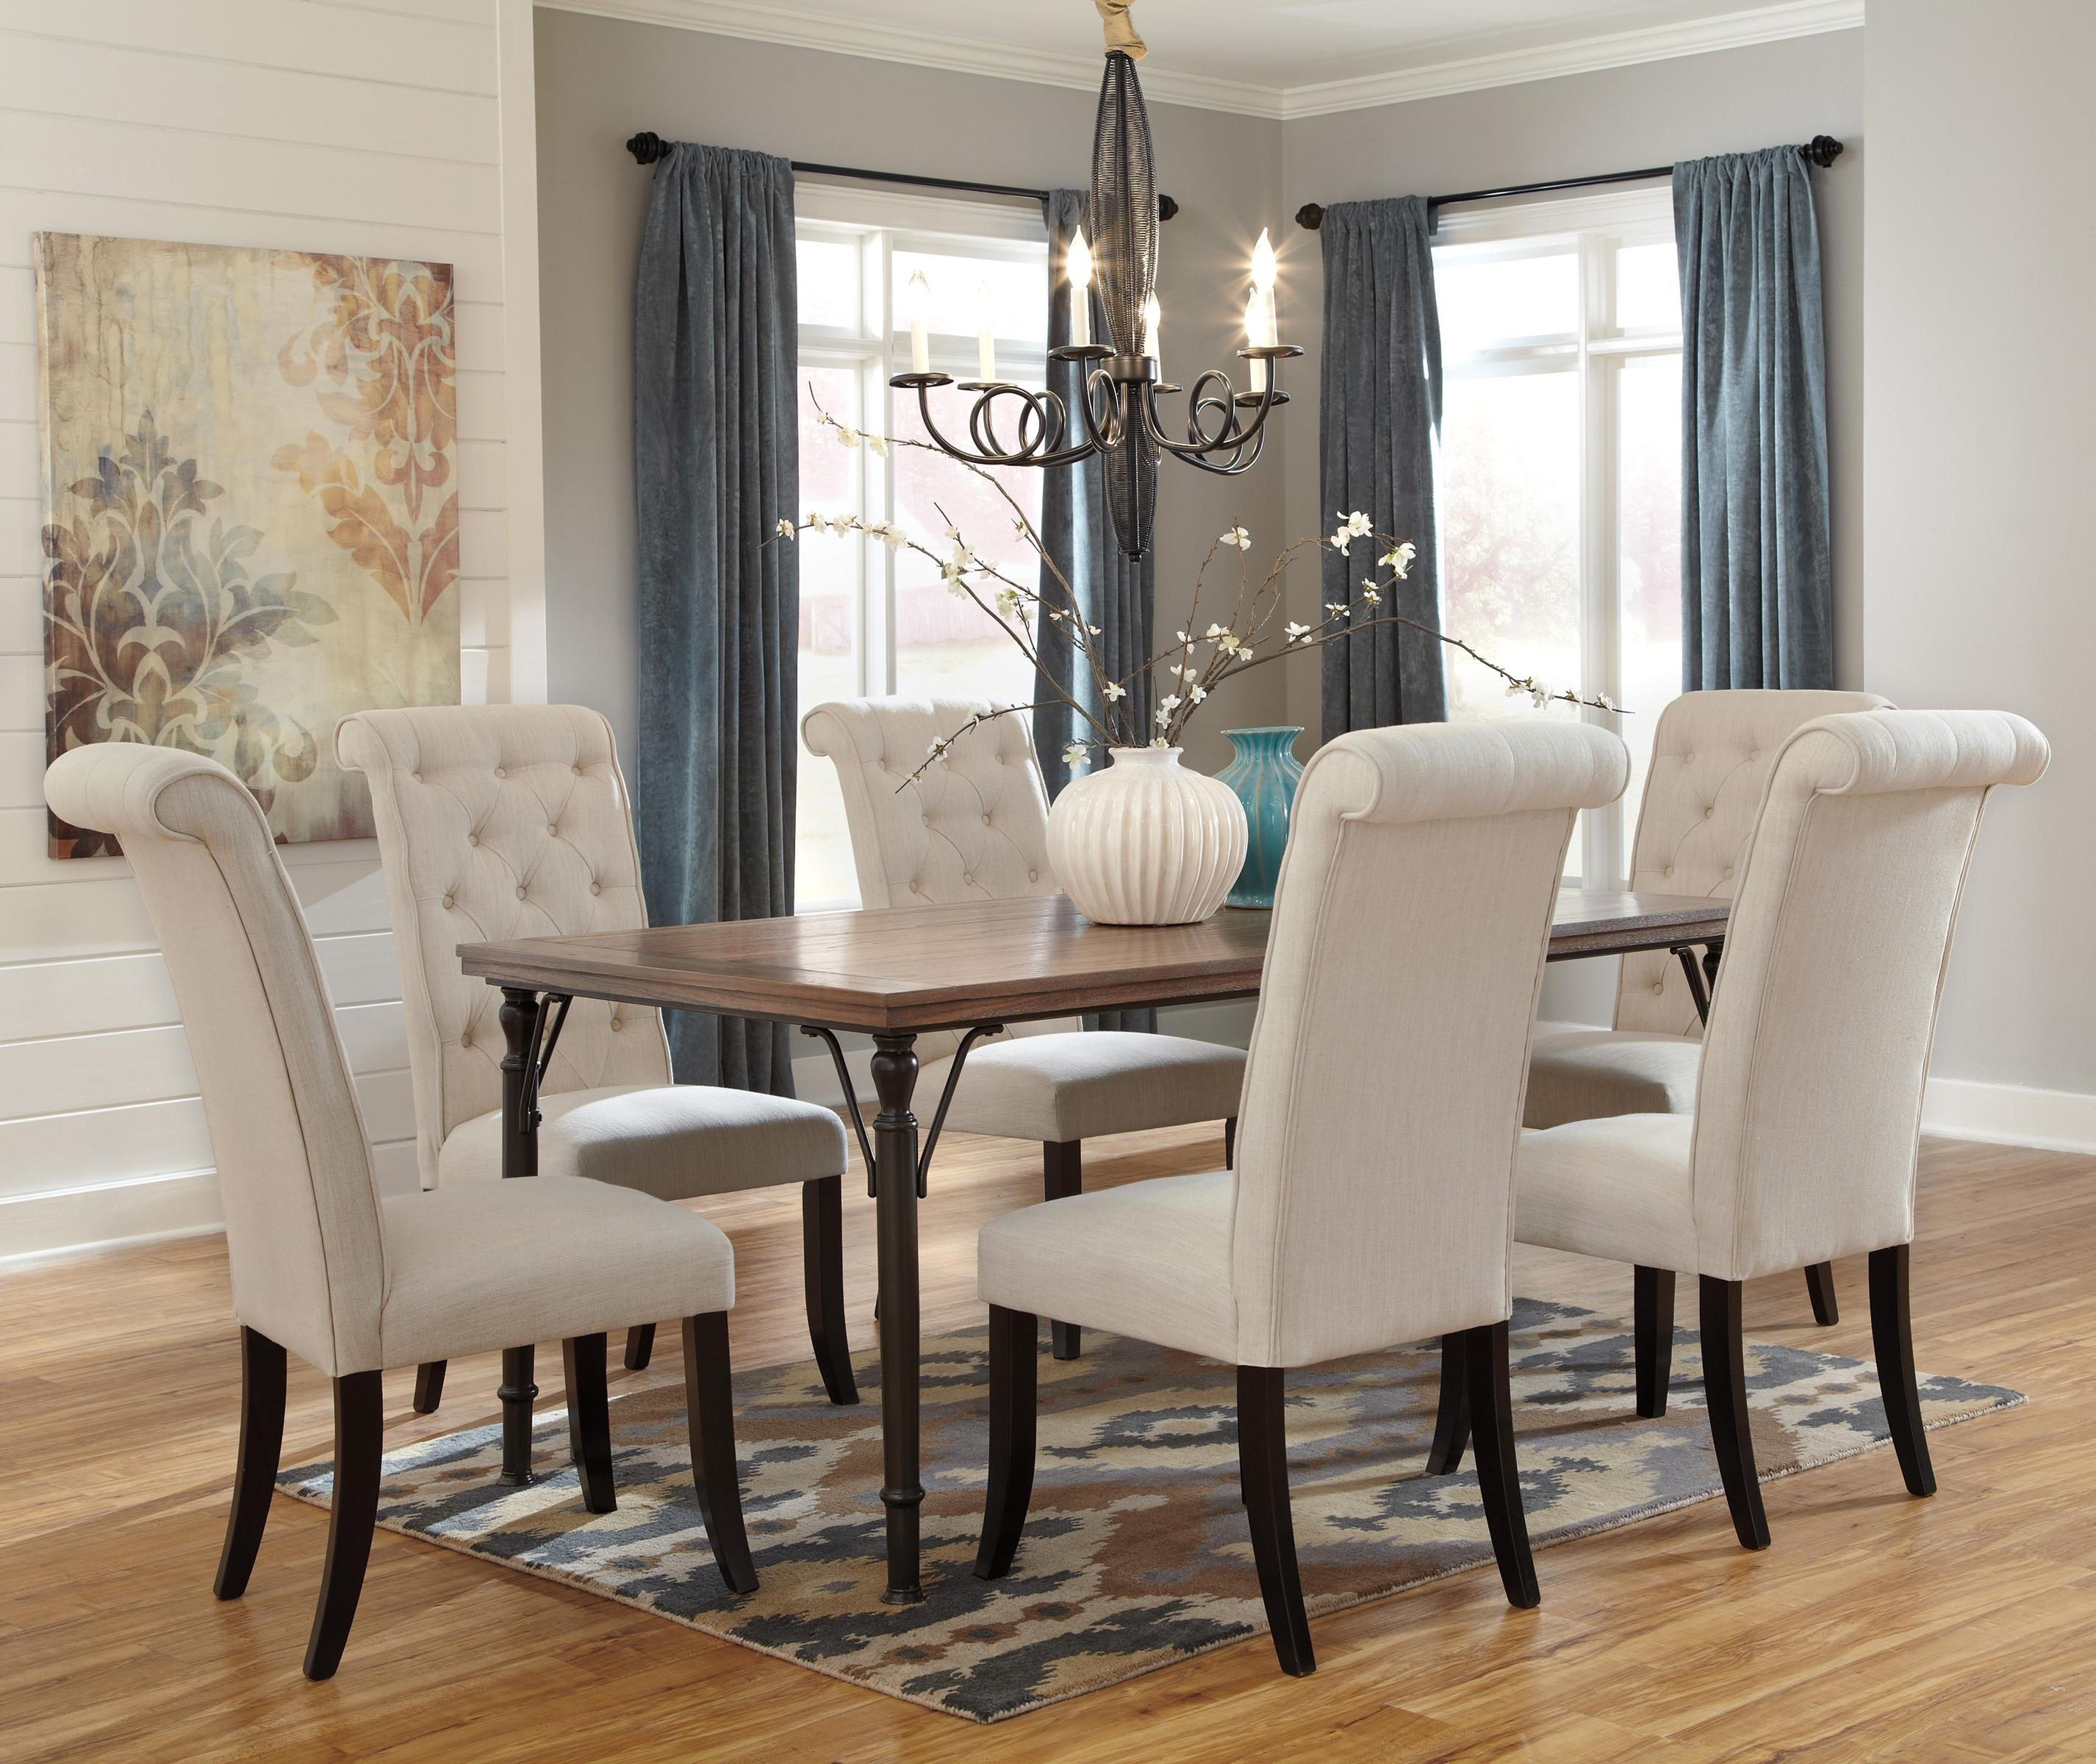 7 Piece Rectangular Dining Room Table Set W/ Wood Top & Metal Legs With 2017 Parquet 6 Piece Dining Sets (Image 1 of 20)